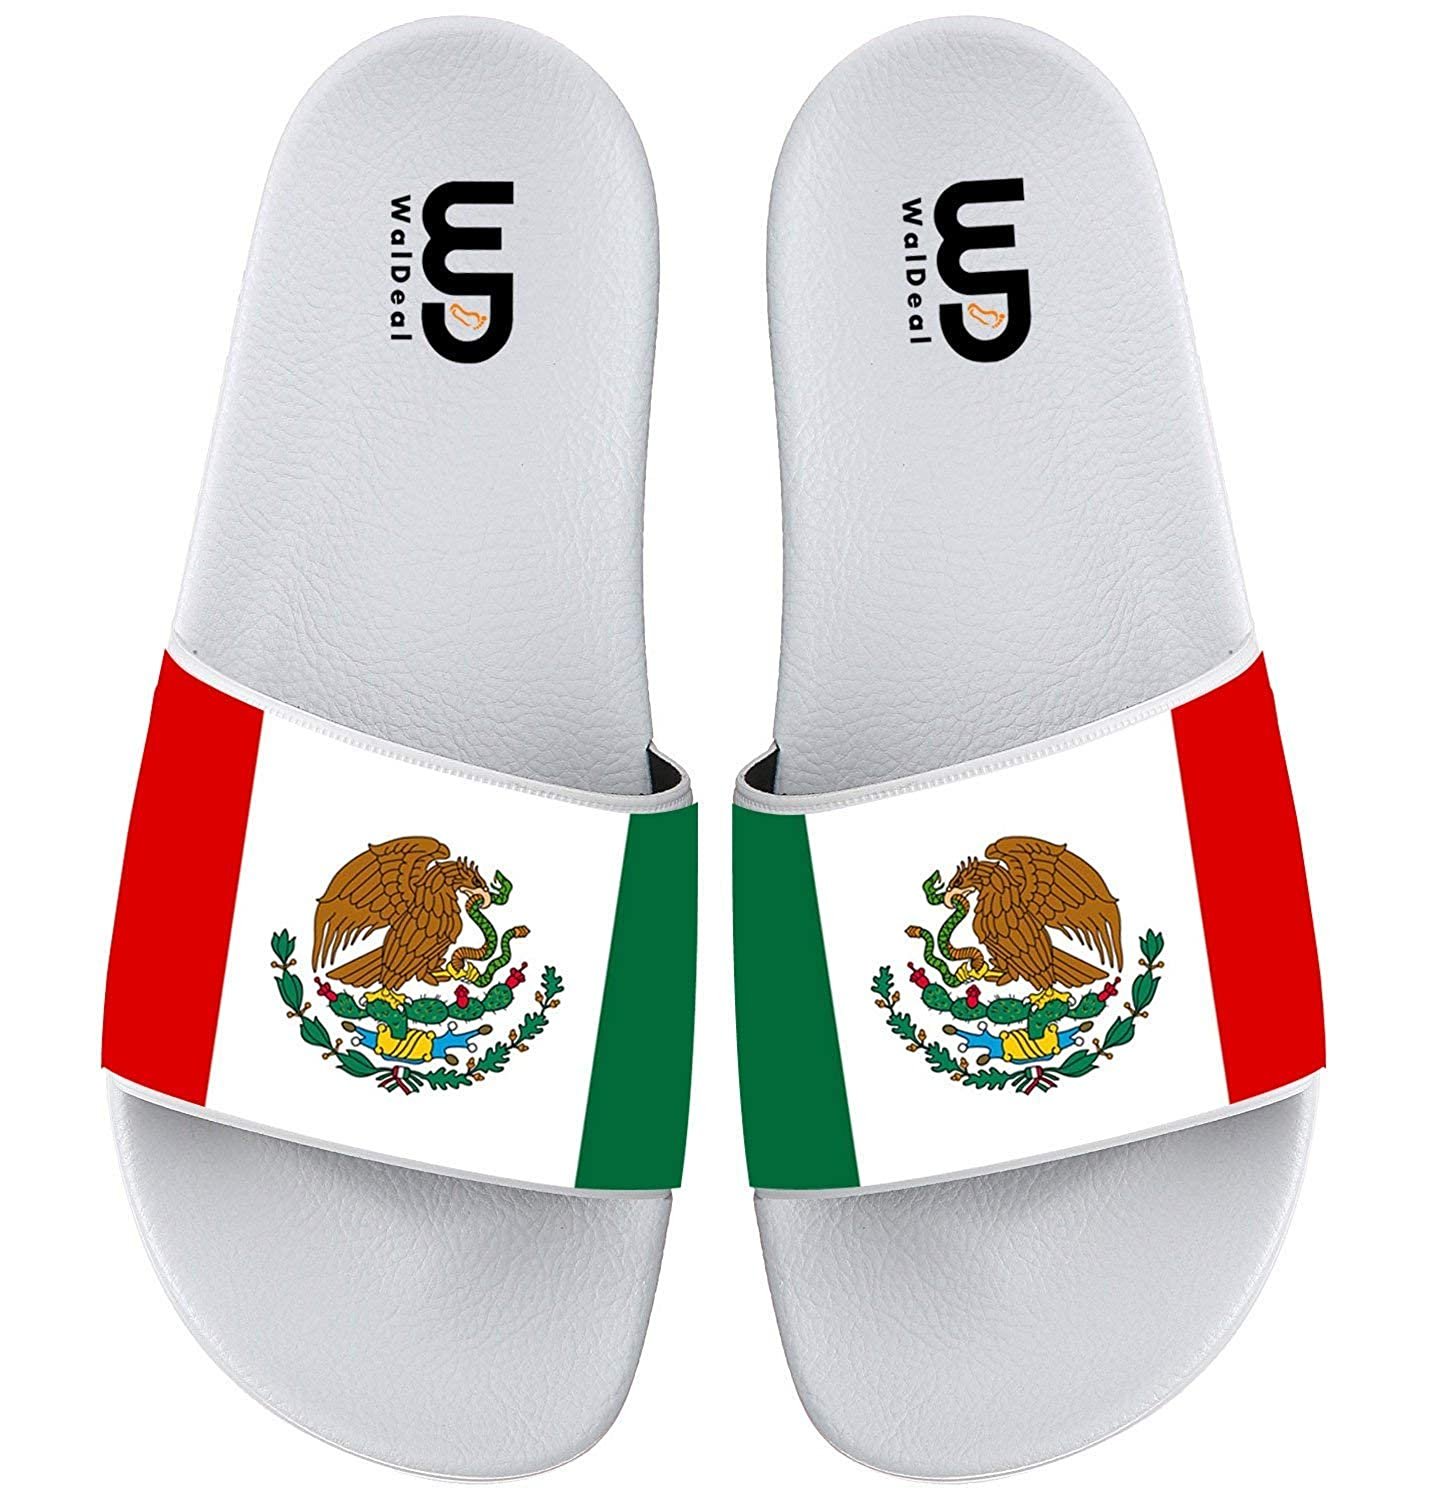 Flag of Mexico Eagle Summer Slide Slippers For Men Women Kid Indoor Outdoor Open-Toe Beach Sandal Shoes